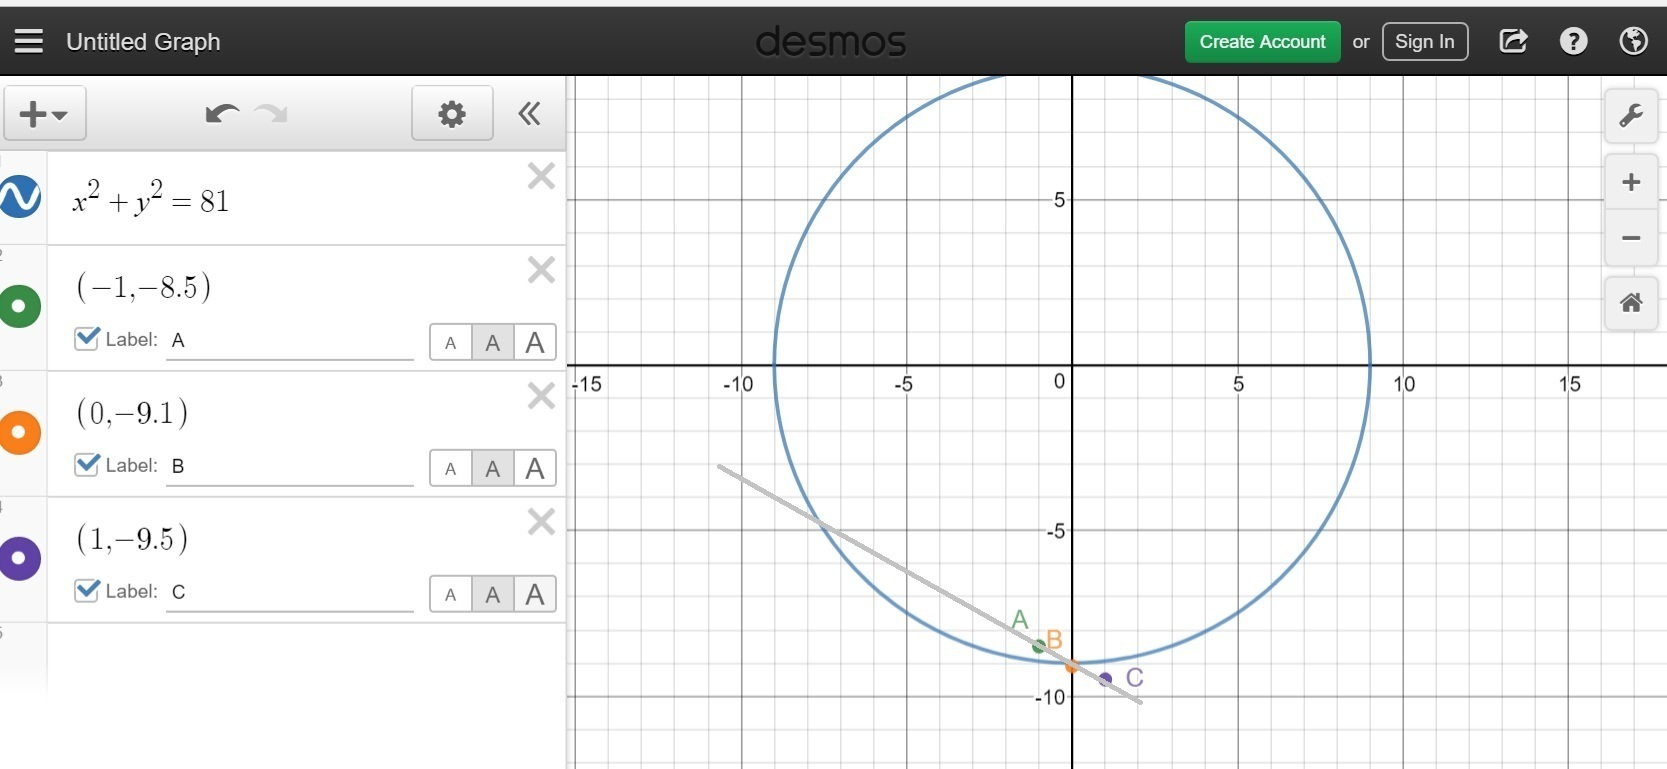 Billy Is Analyzing A Circle, Y2 + X2 = 81, And A Linear